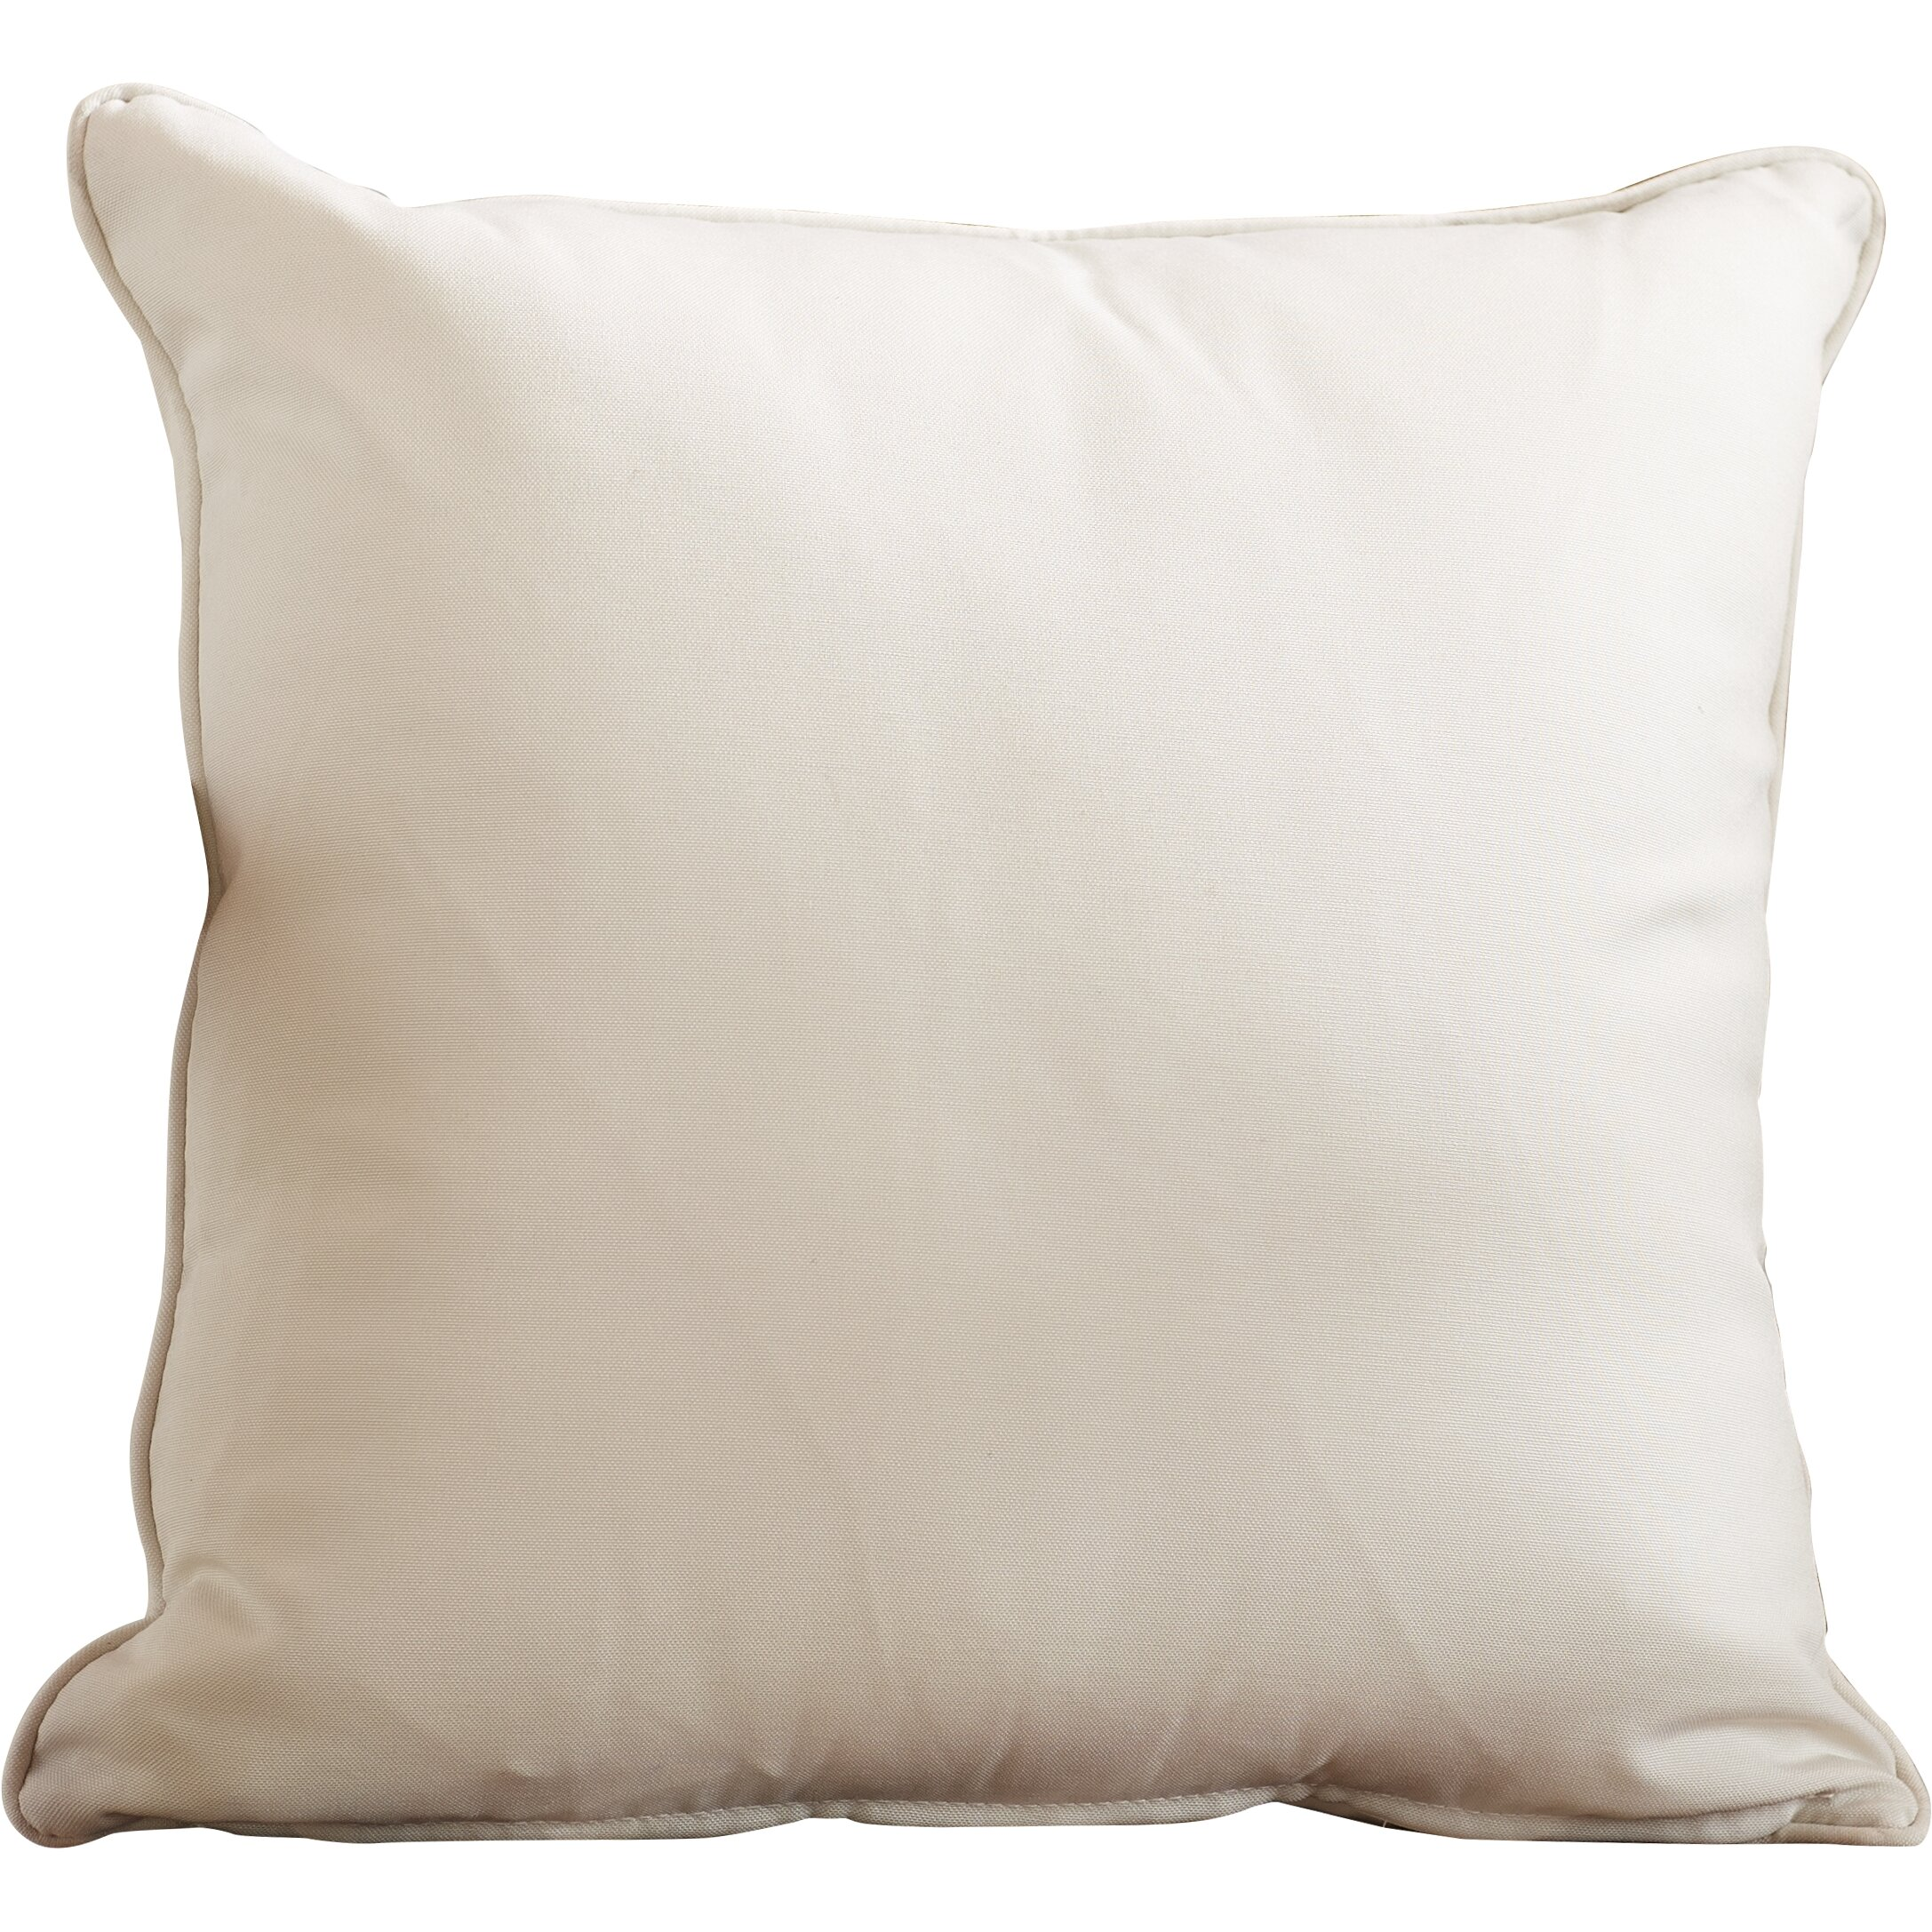 Wayfair Blue Decorative Pillows : Wayfair Custom Outdoor Cushions Outdoor Throw Pillow & Reviews Wayfair.ca